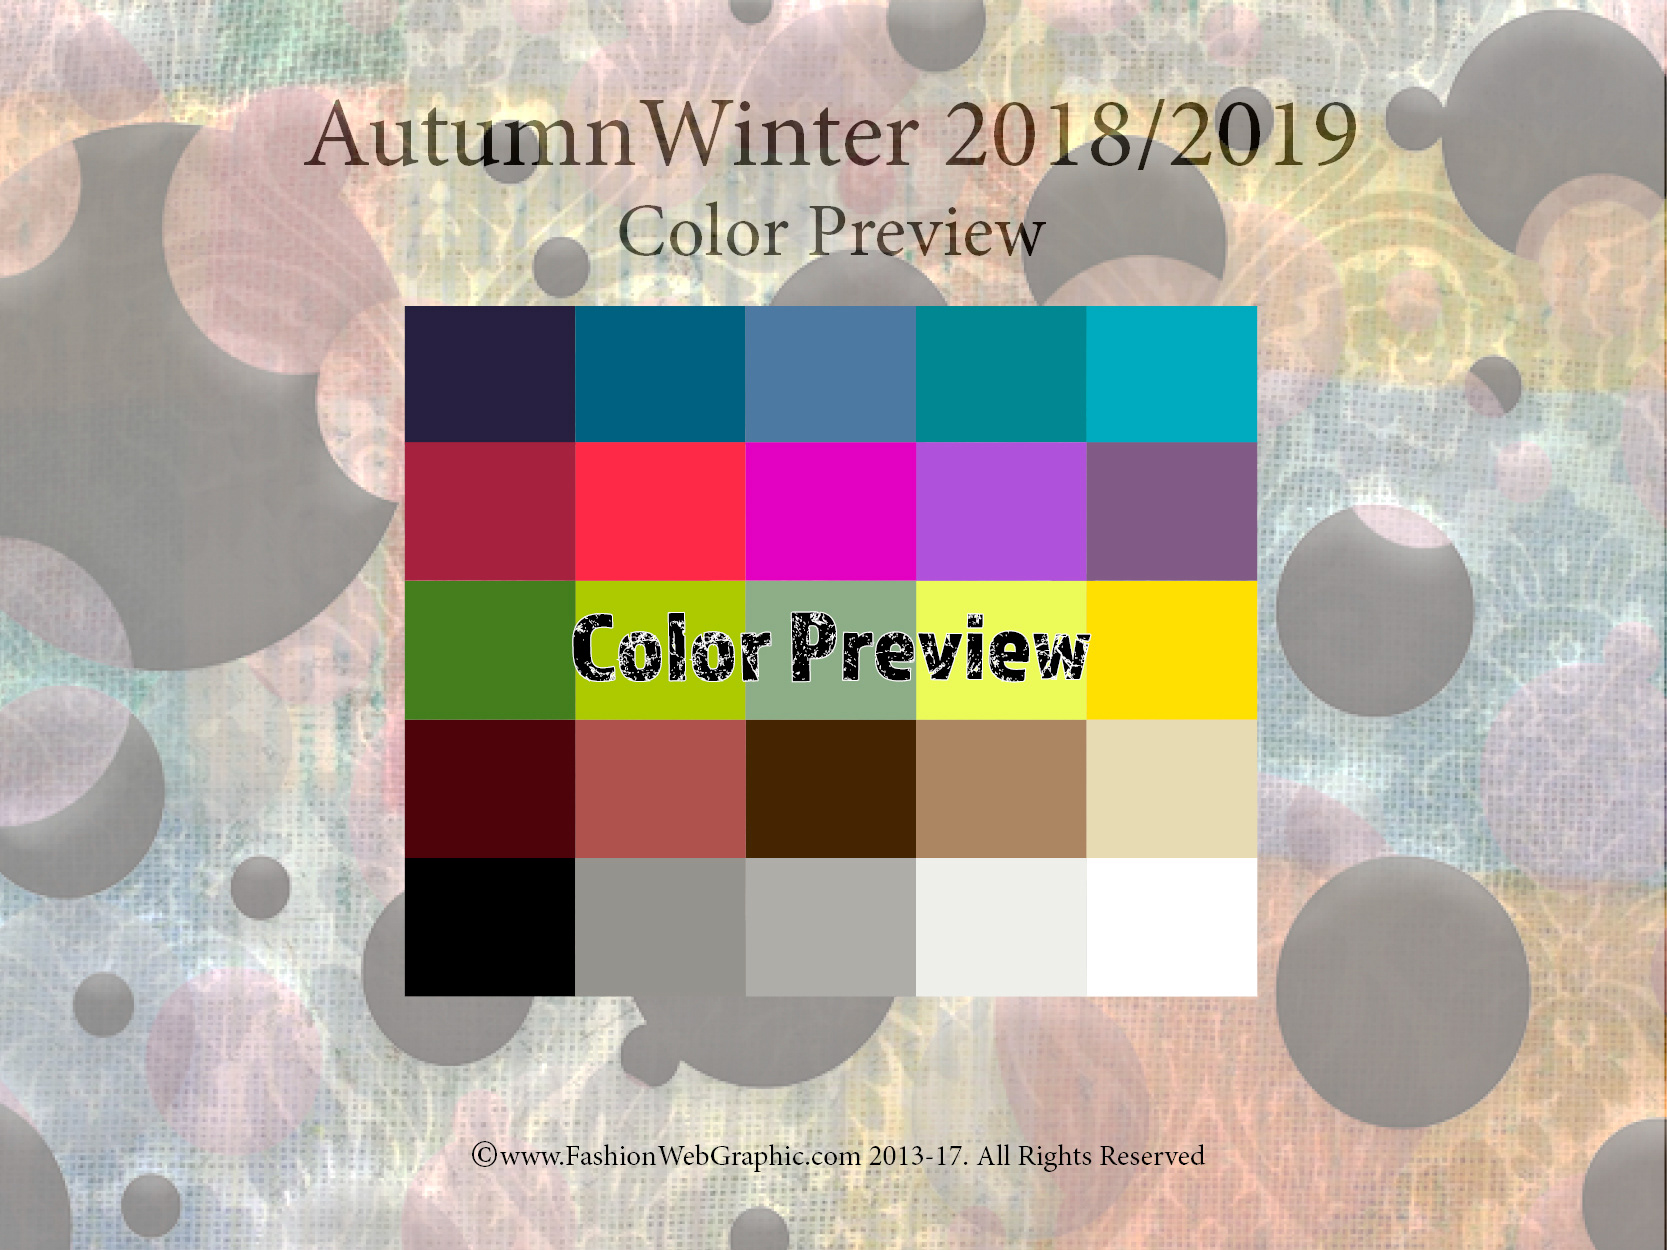 Judith ng aw2018 2019 trend forecasting for 2018 winter colors